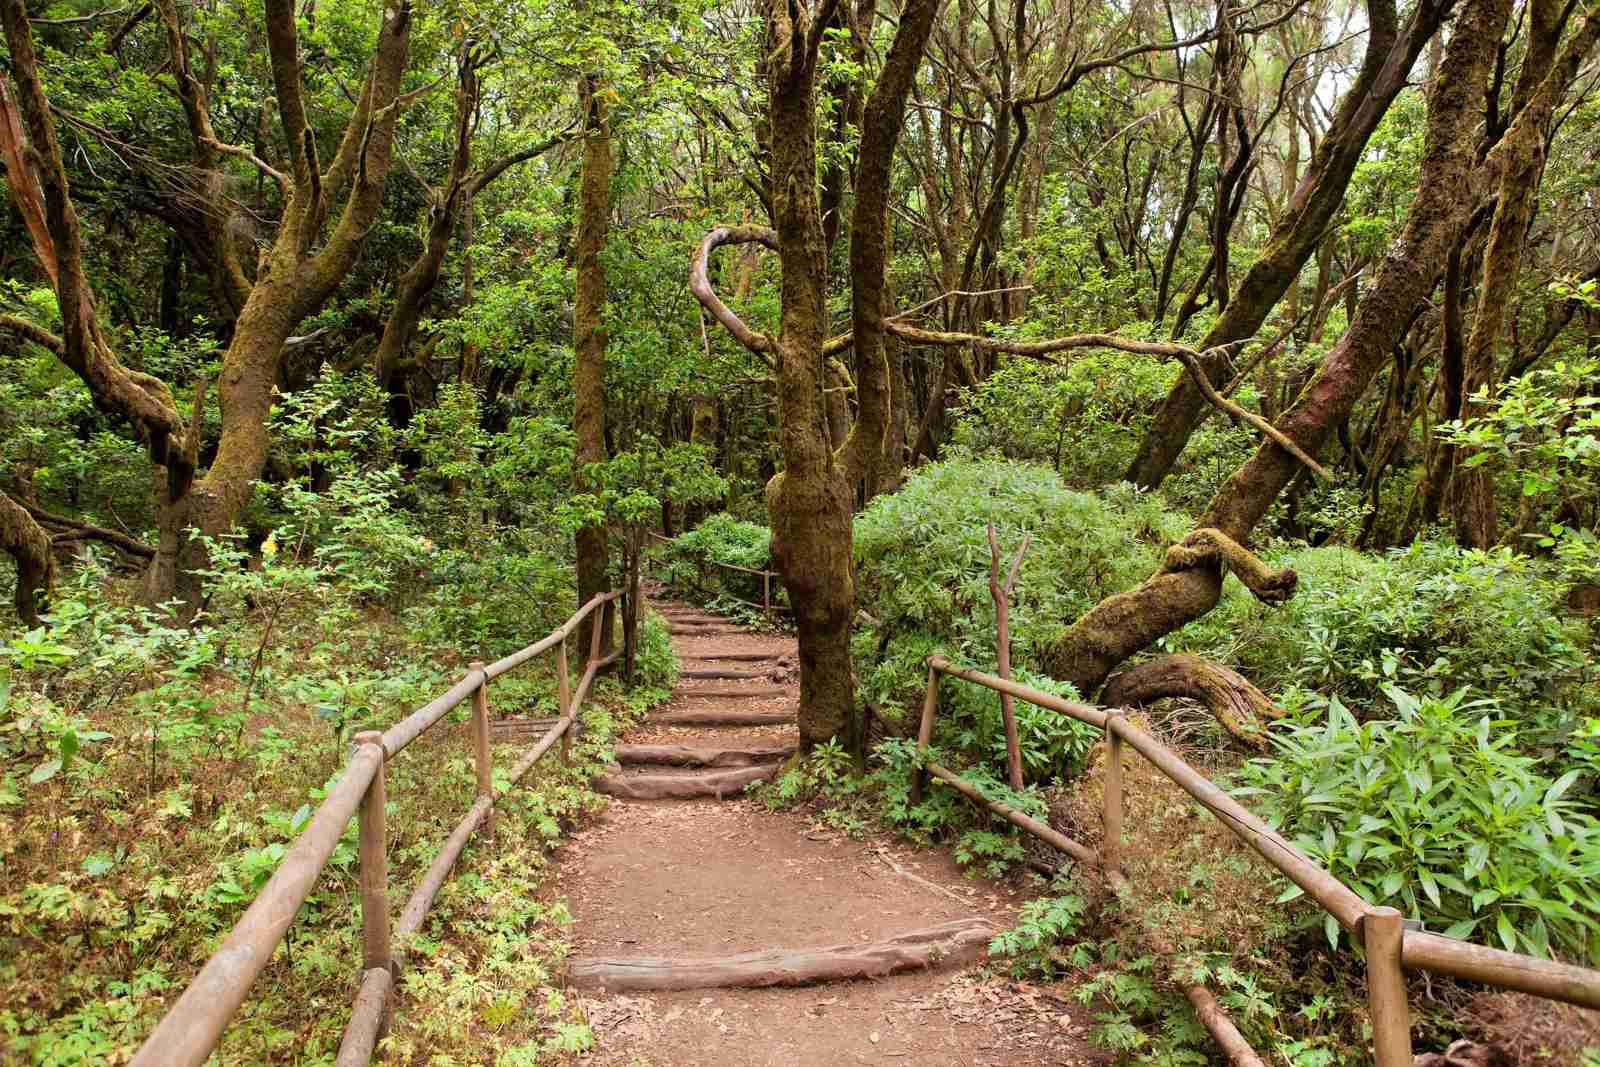 The rainforest in La Gomera, Parque Nacional de Garajonay, Canary islands, Spain. (Photo by nodff / Shutterstock)